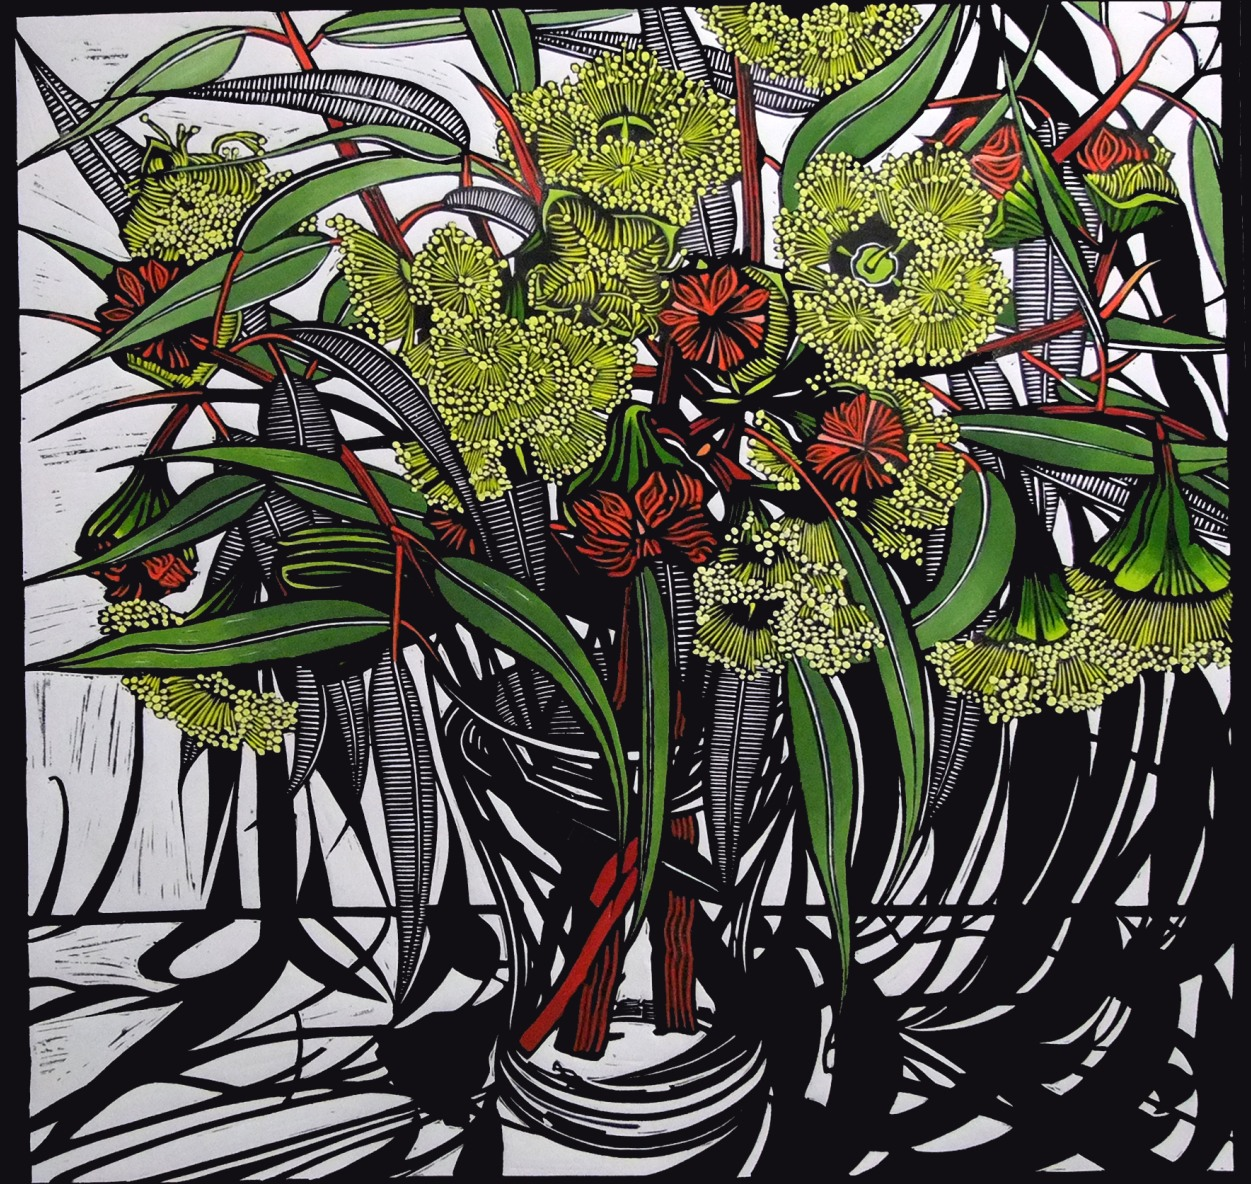 Red-Capped Gum | 80cm w x 80cm h | $900 unframed